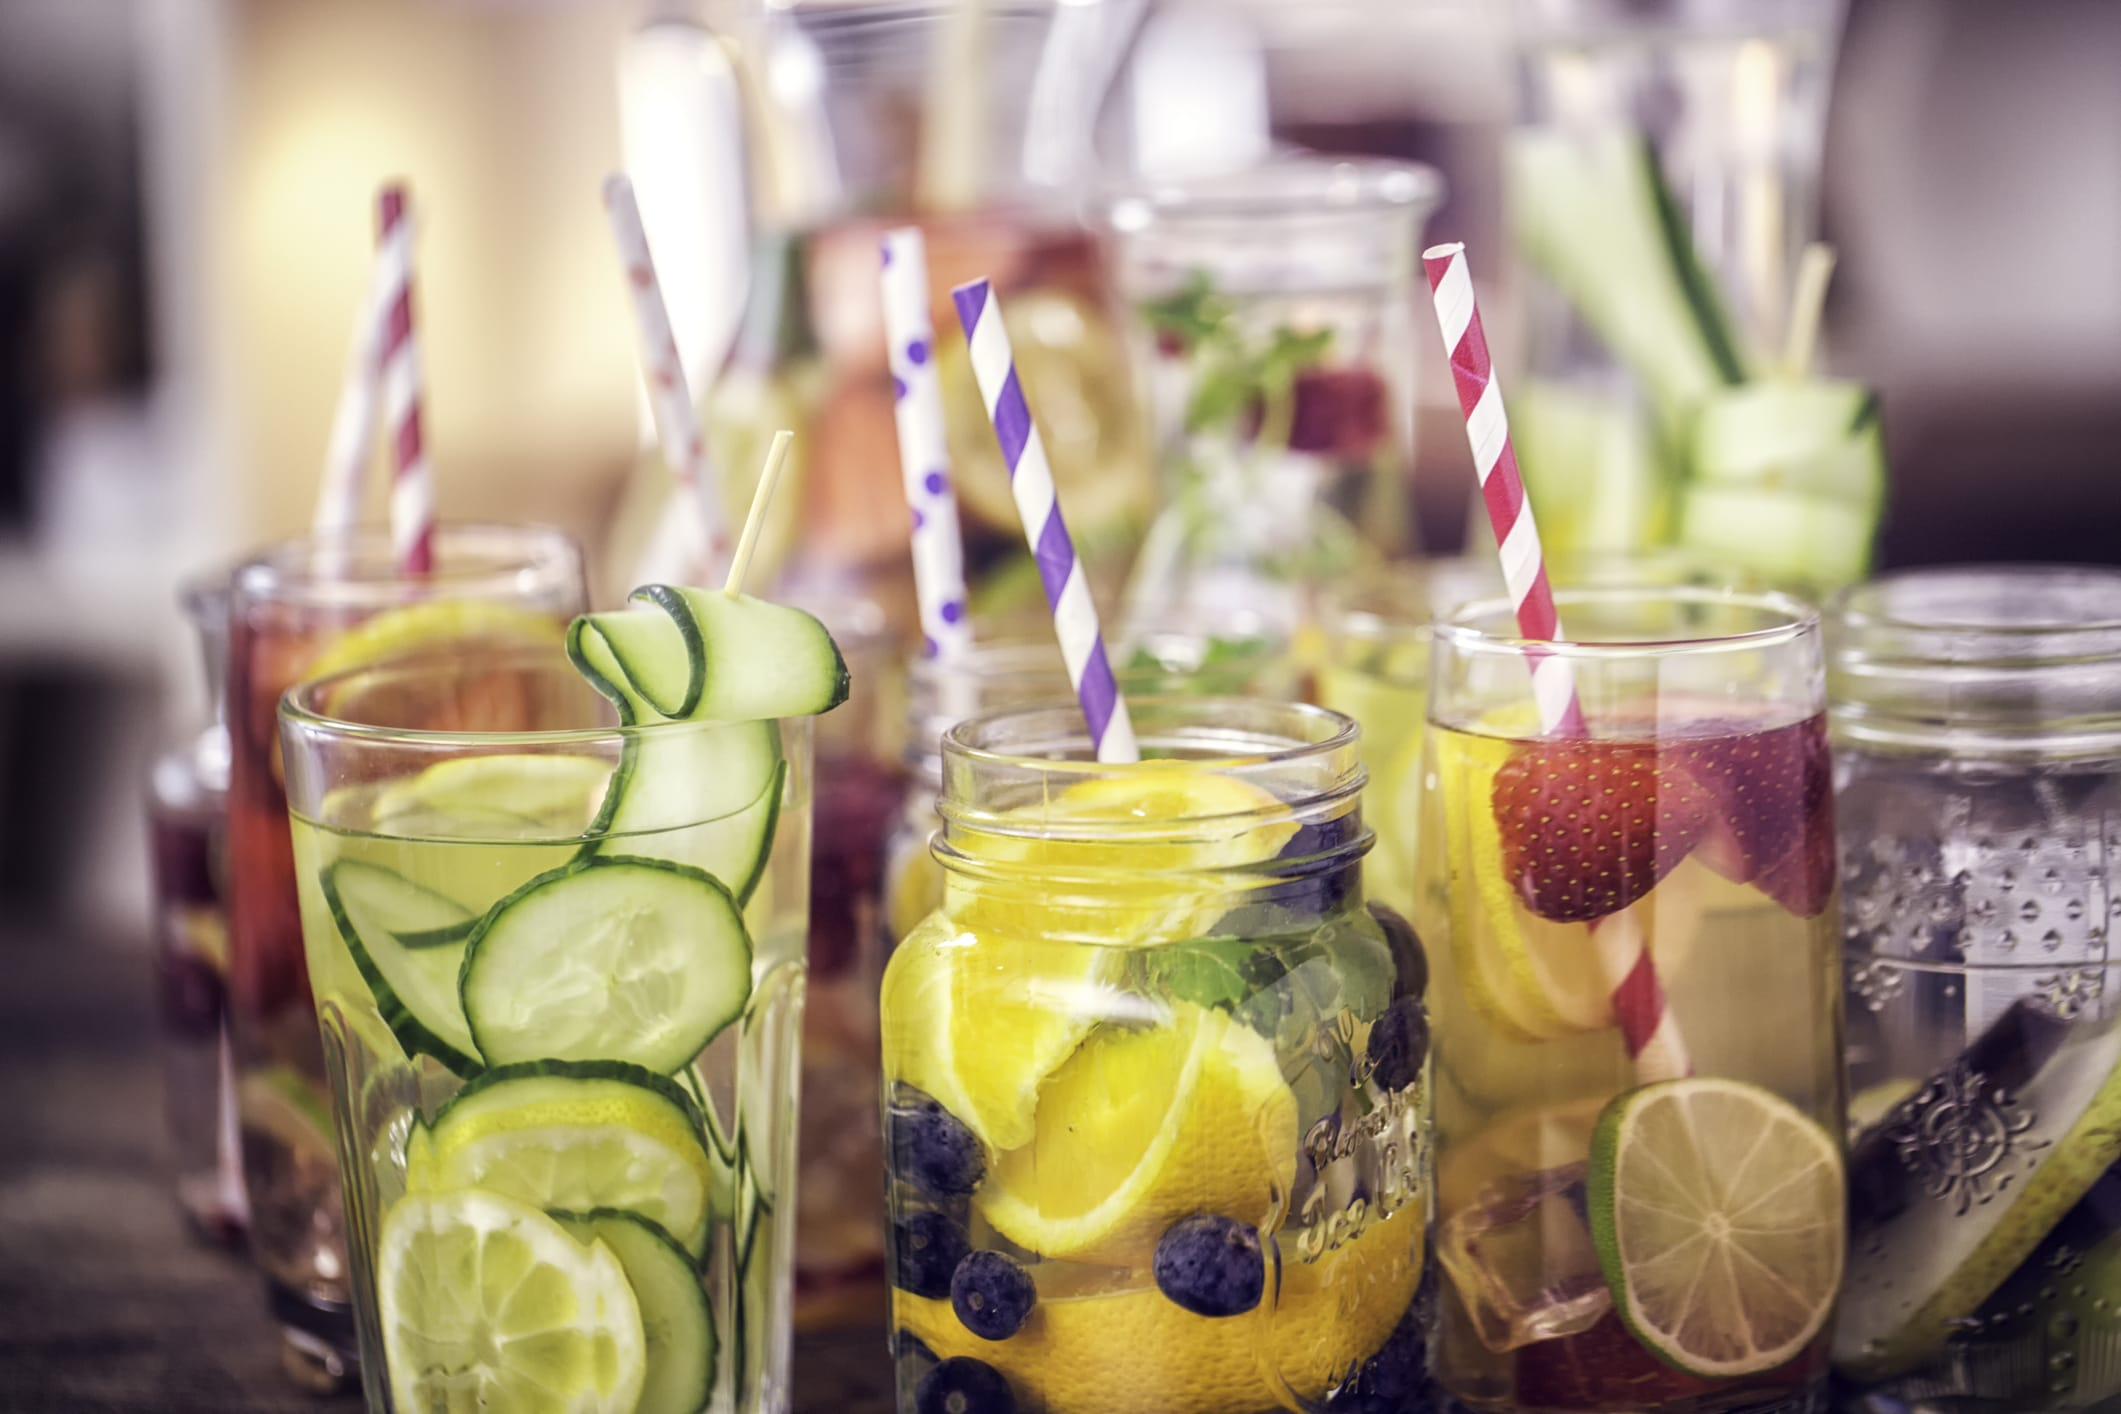 Infused Water with Fresh Fruits